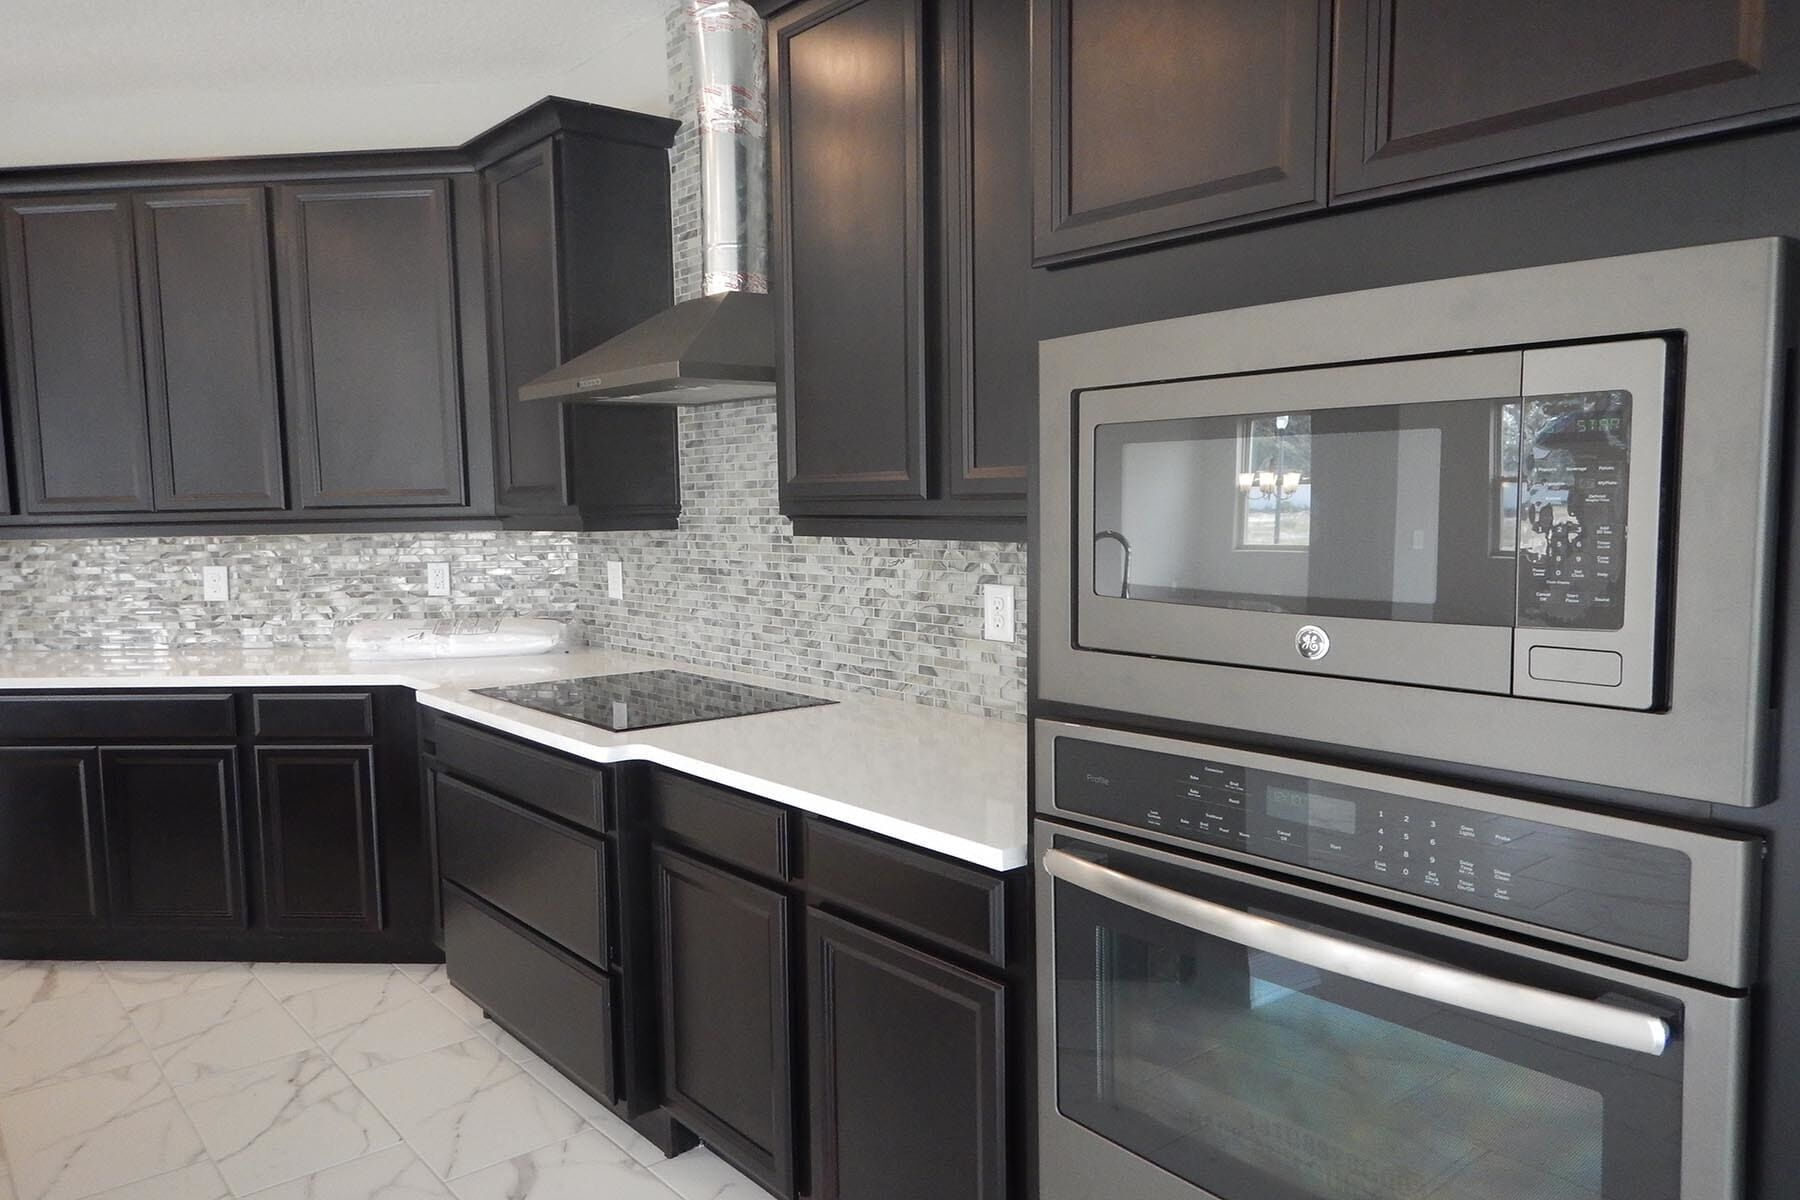 Kitchen featured in the Tradewinds Fl By M/I Homes in Orlando, FL